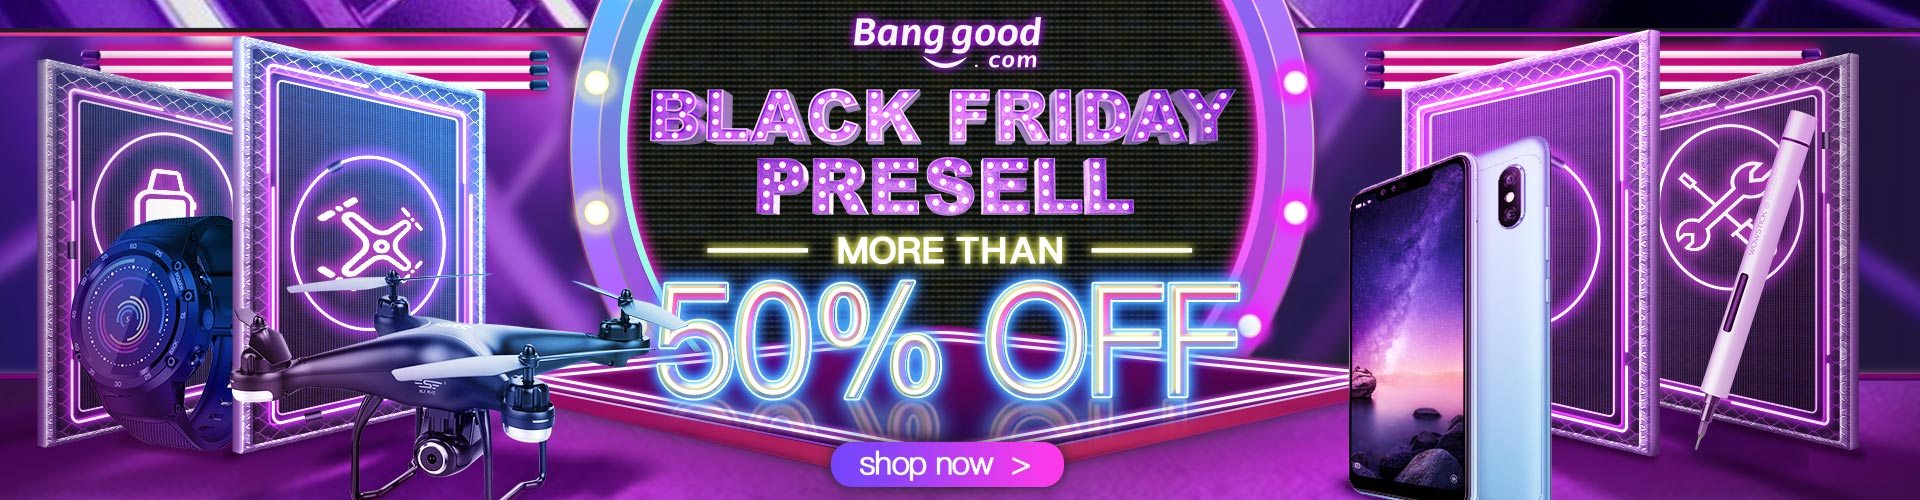 Banggood Black Friday